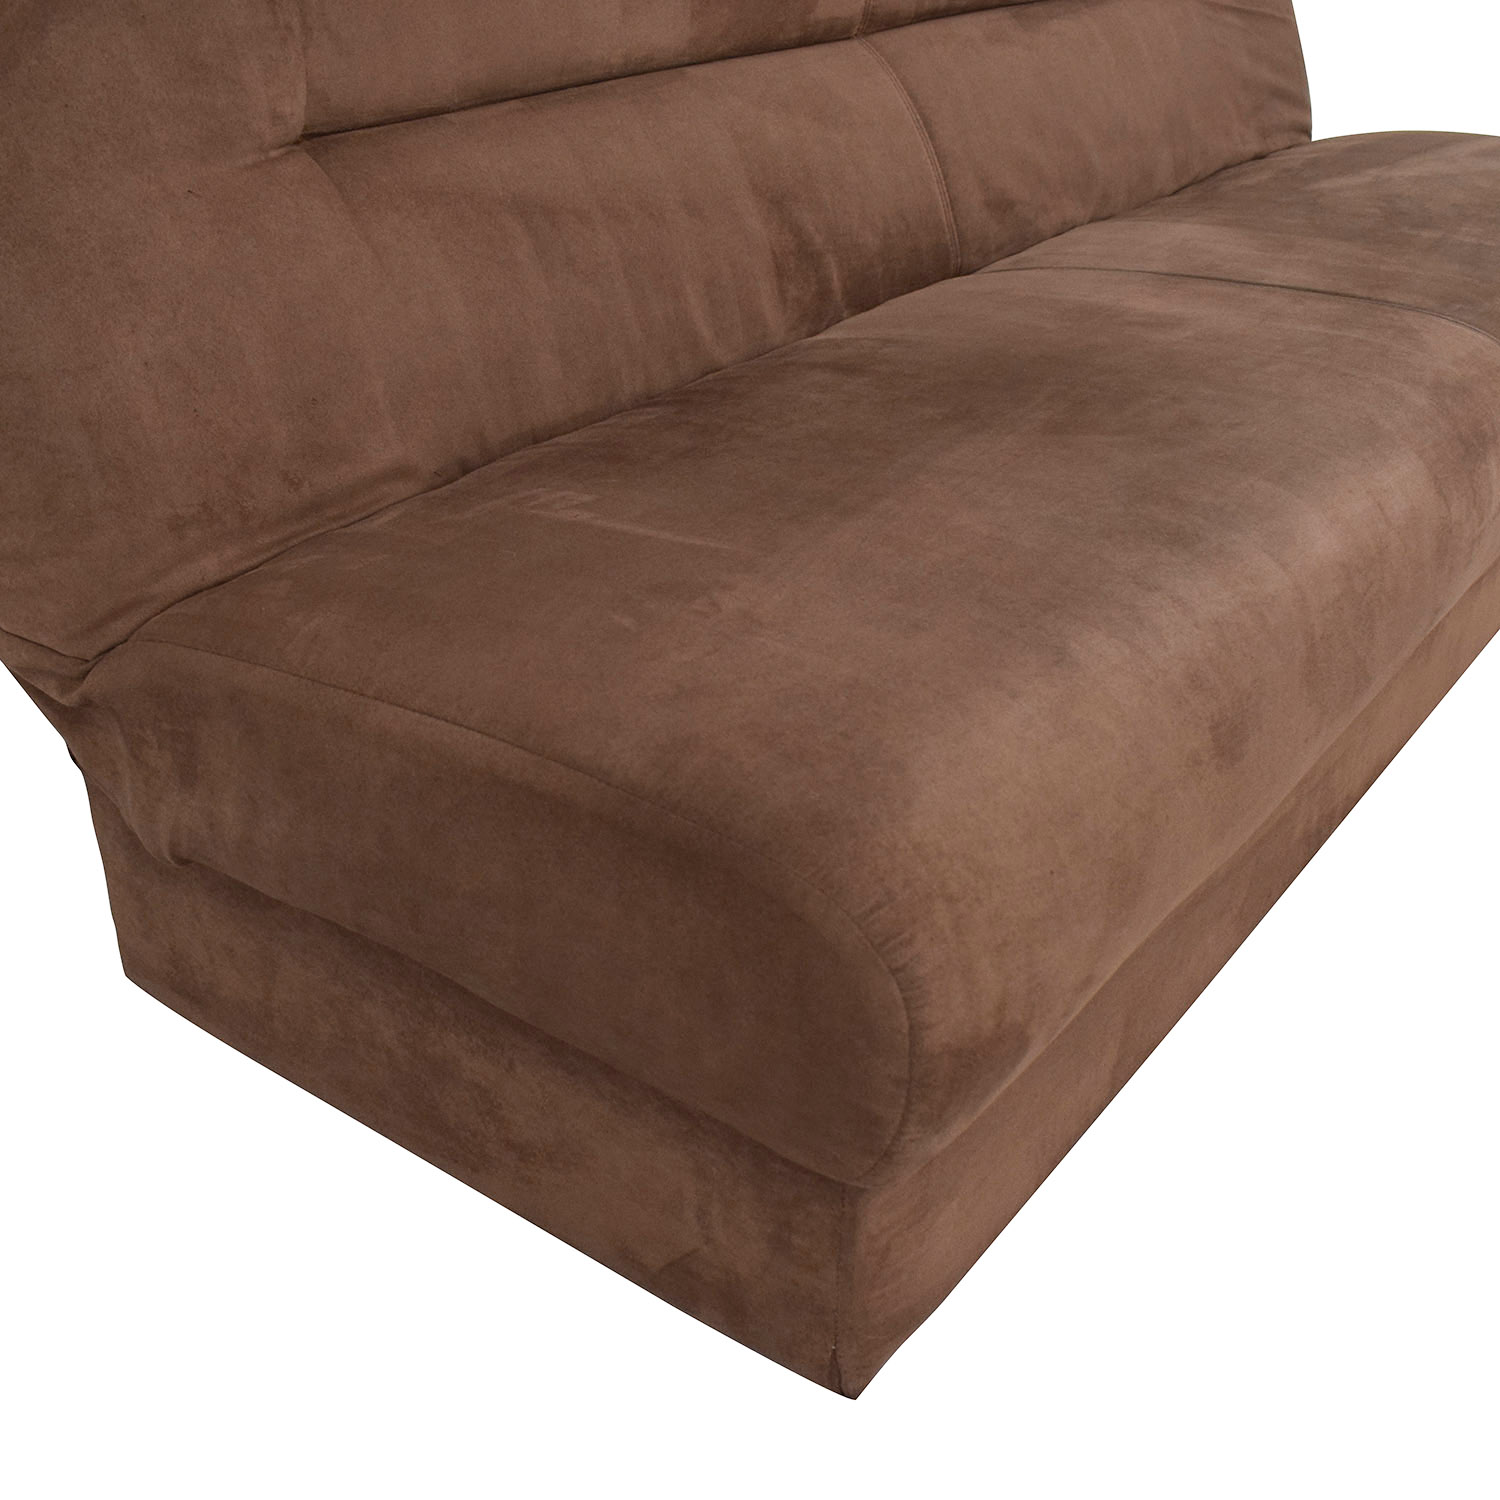 Istikbal Furniture Regata Diego Convertible Full Sofa Bed sale